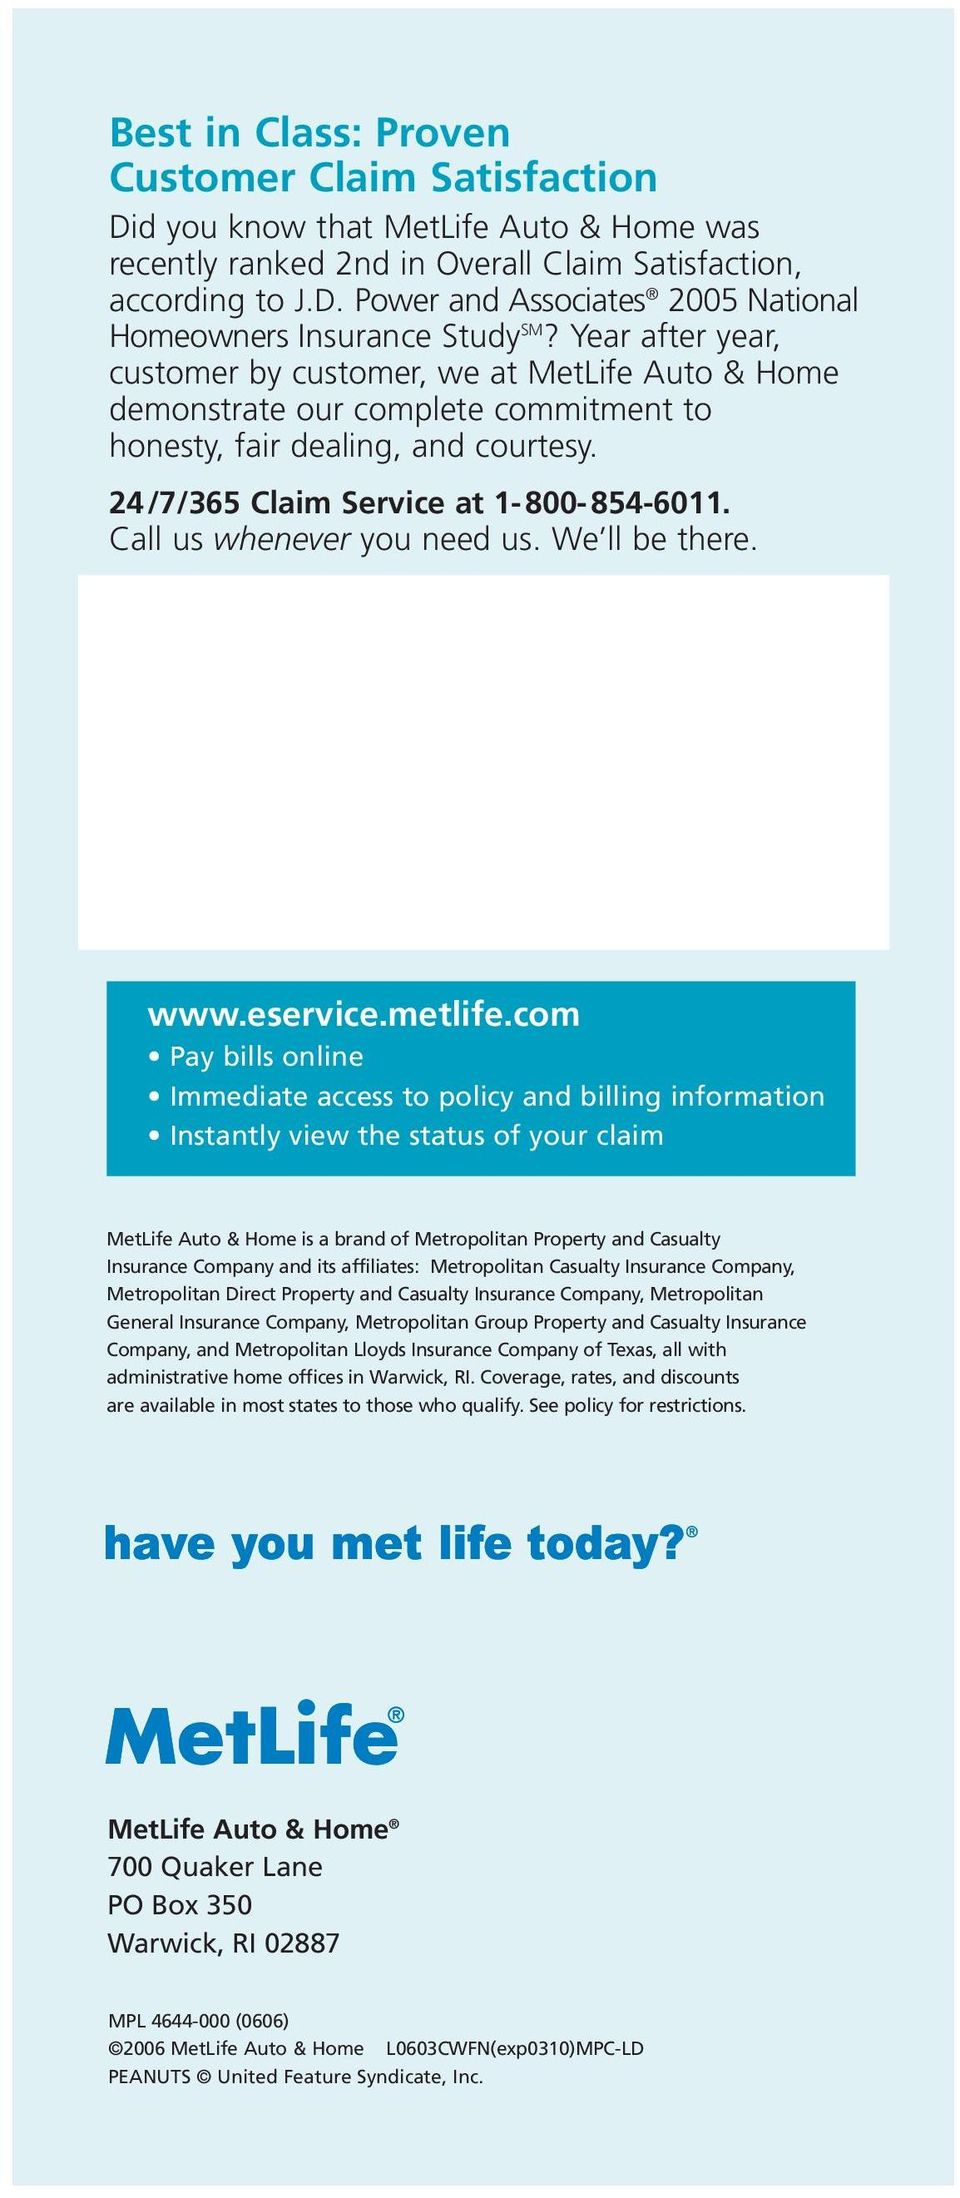 Call us whenever you need us. We ll be there. www.eservice.metlife.